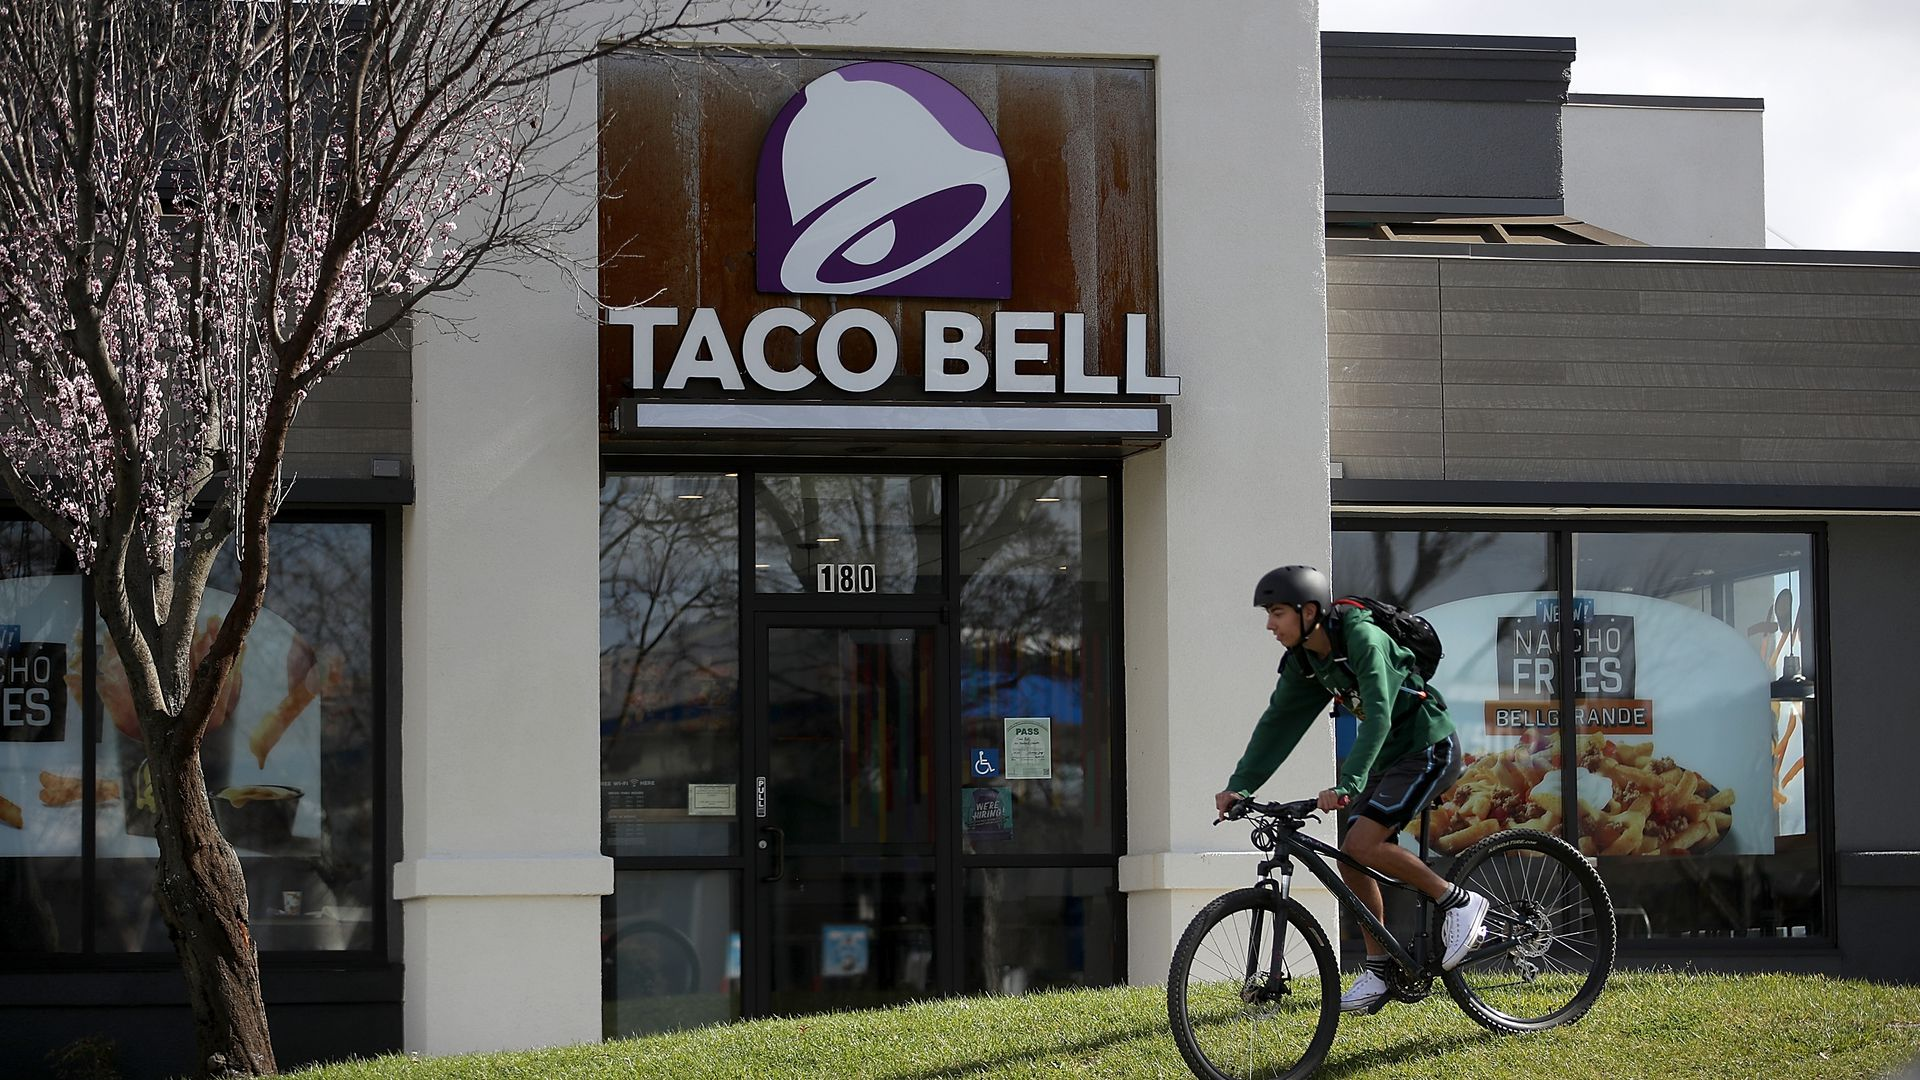 A customer rides his bike in front of Taco Bell.